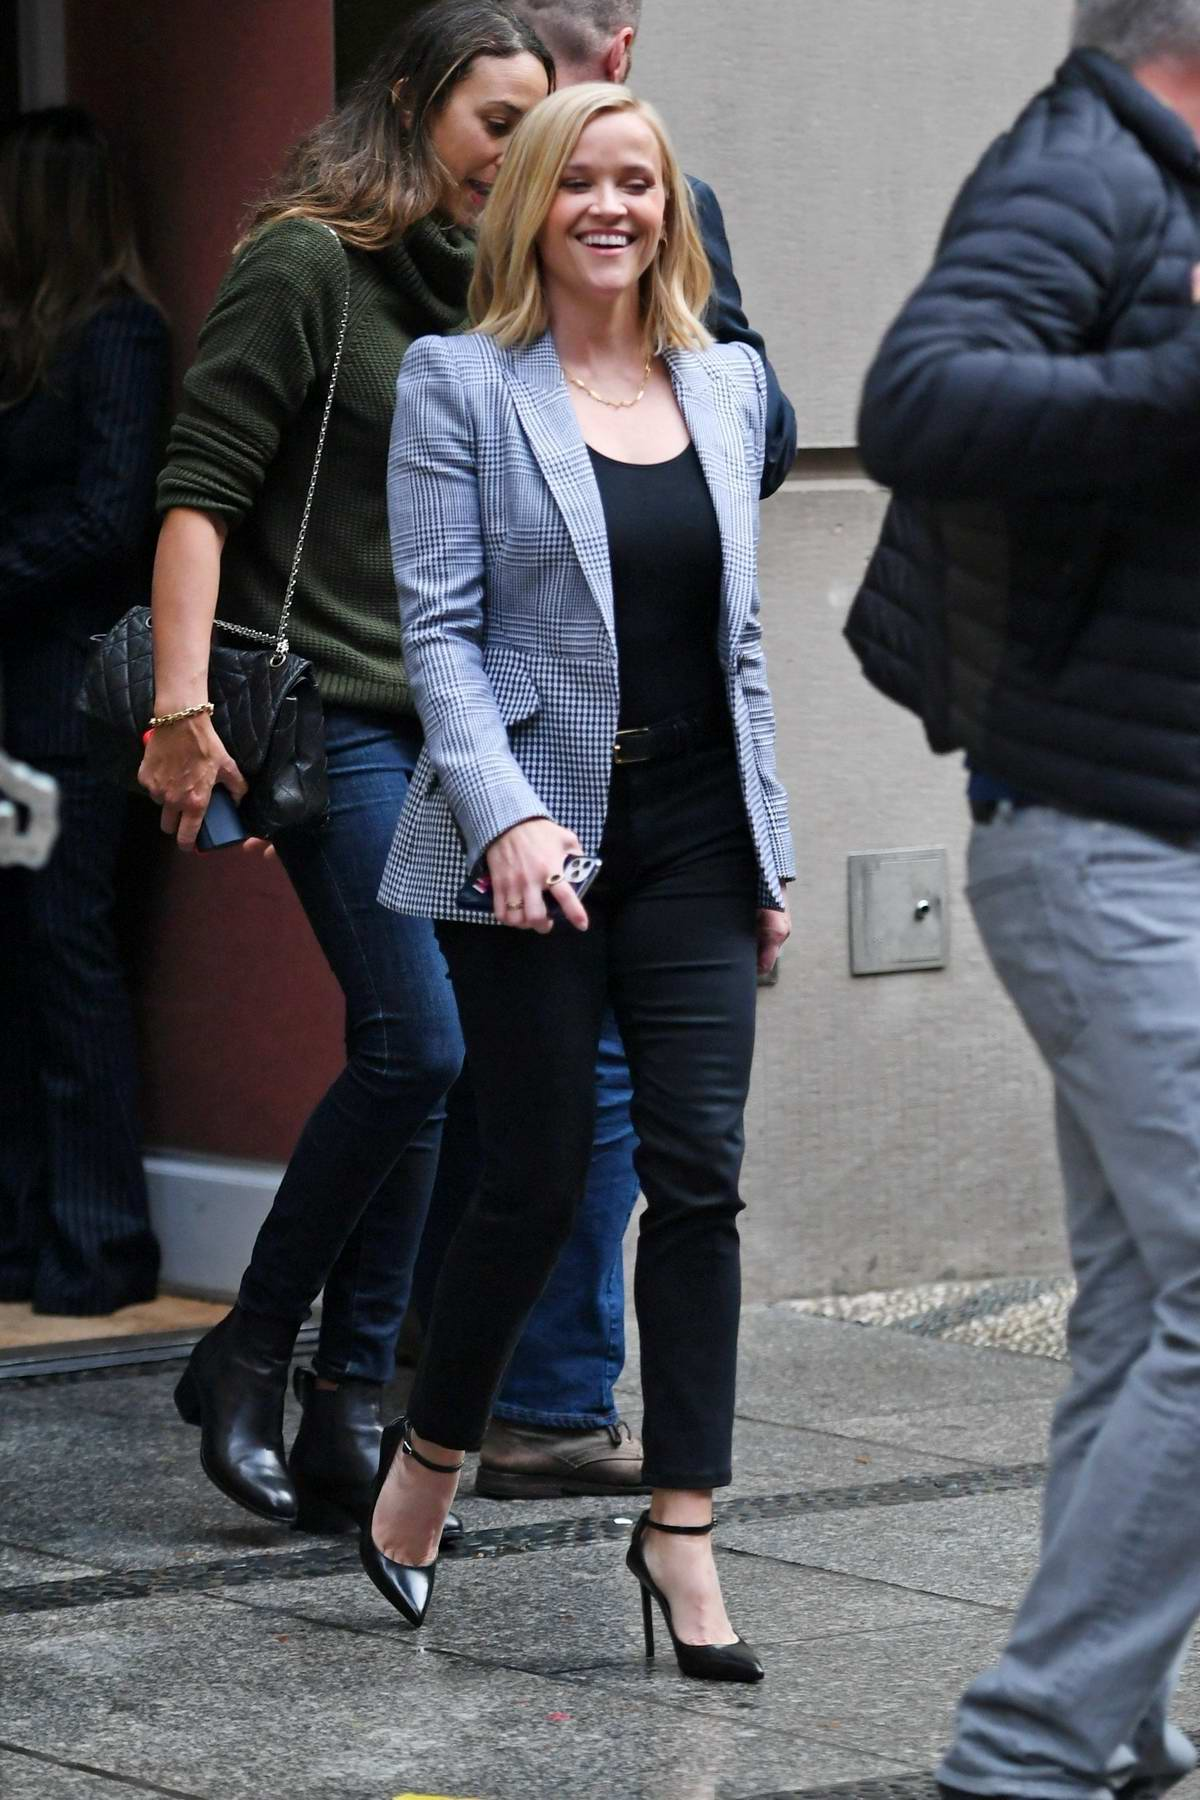 Reese Witherspoon is all smiles during 'The Morning Show' promo rounds in Soho, New York City